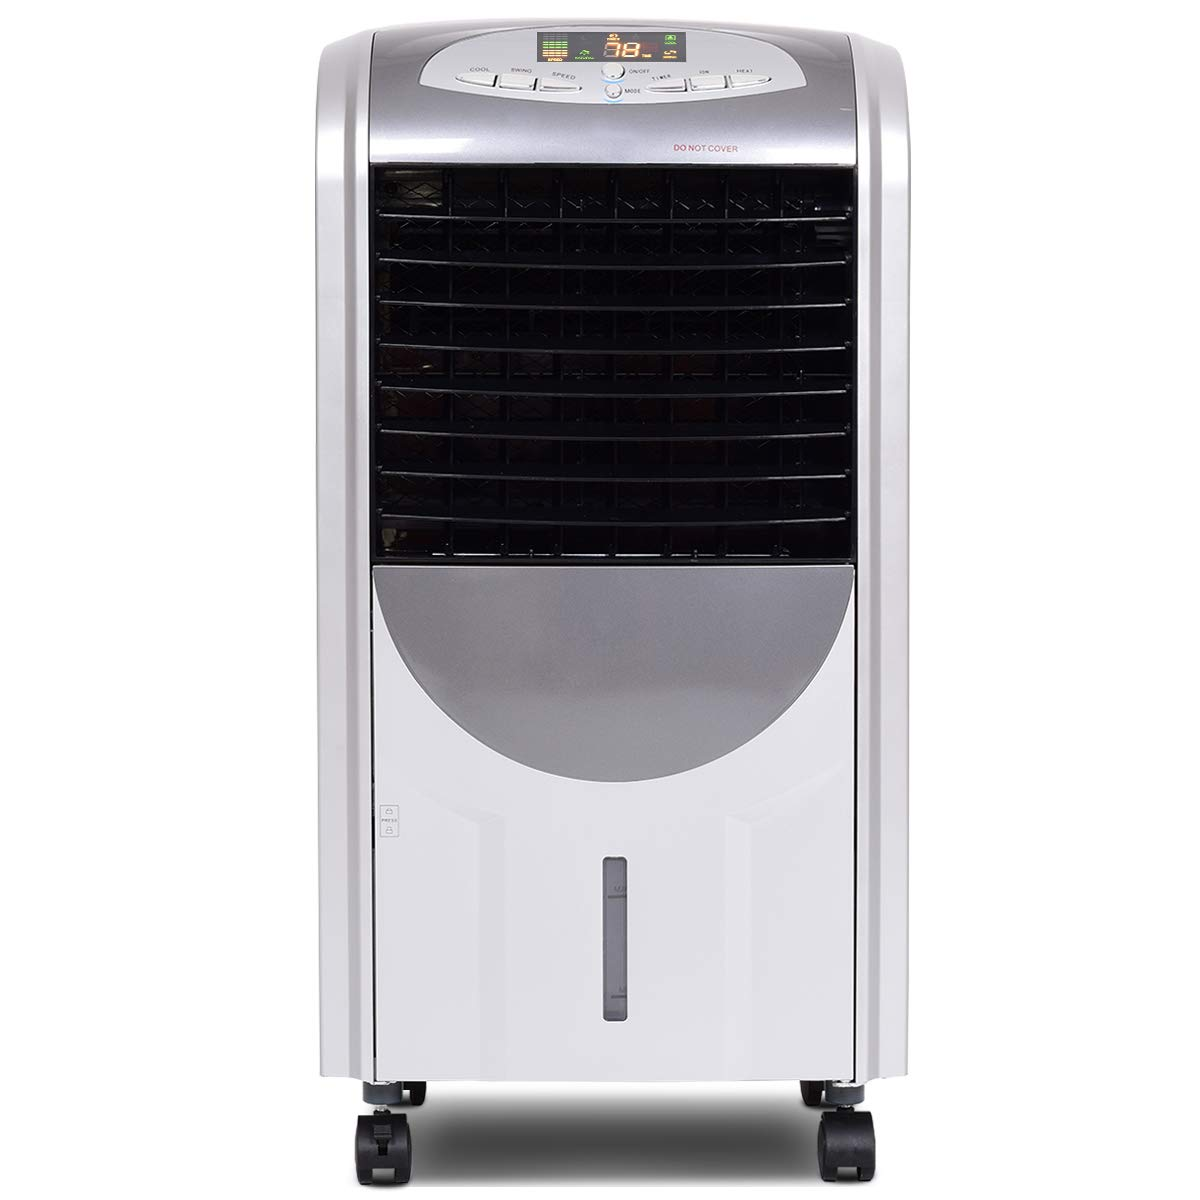 """Toolsempire Portable Air Conditioner Air Cooler and Heater with Fan Filter Humidifier 3 Wind Speed Ice Crystal Box Remote Control (29"""" H Grey)"""